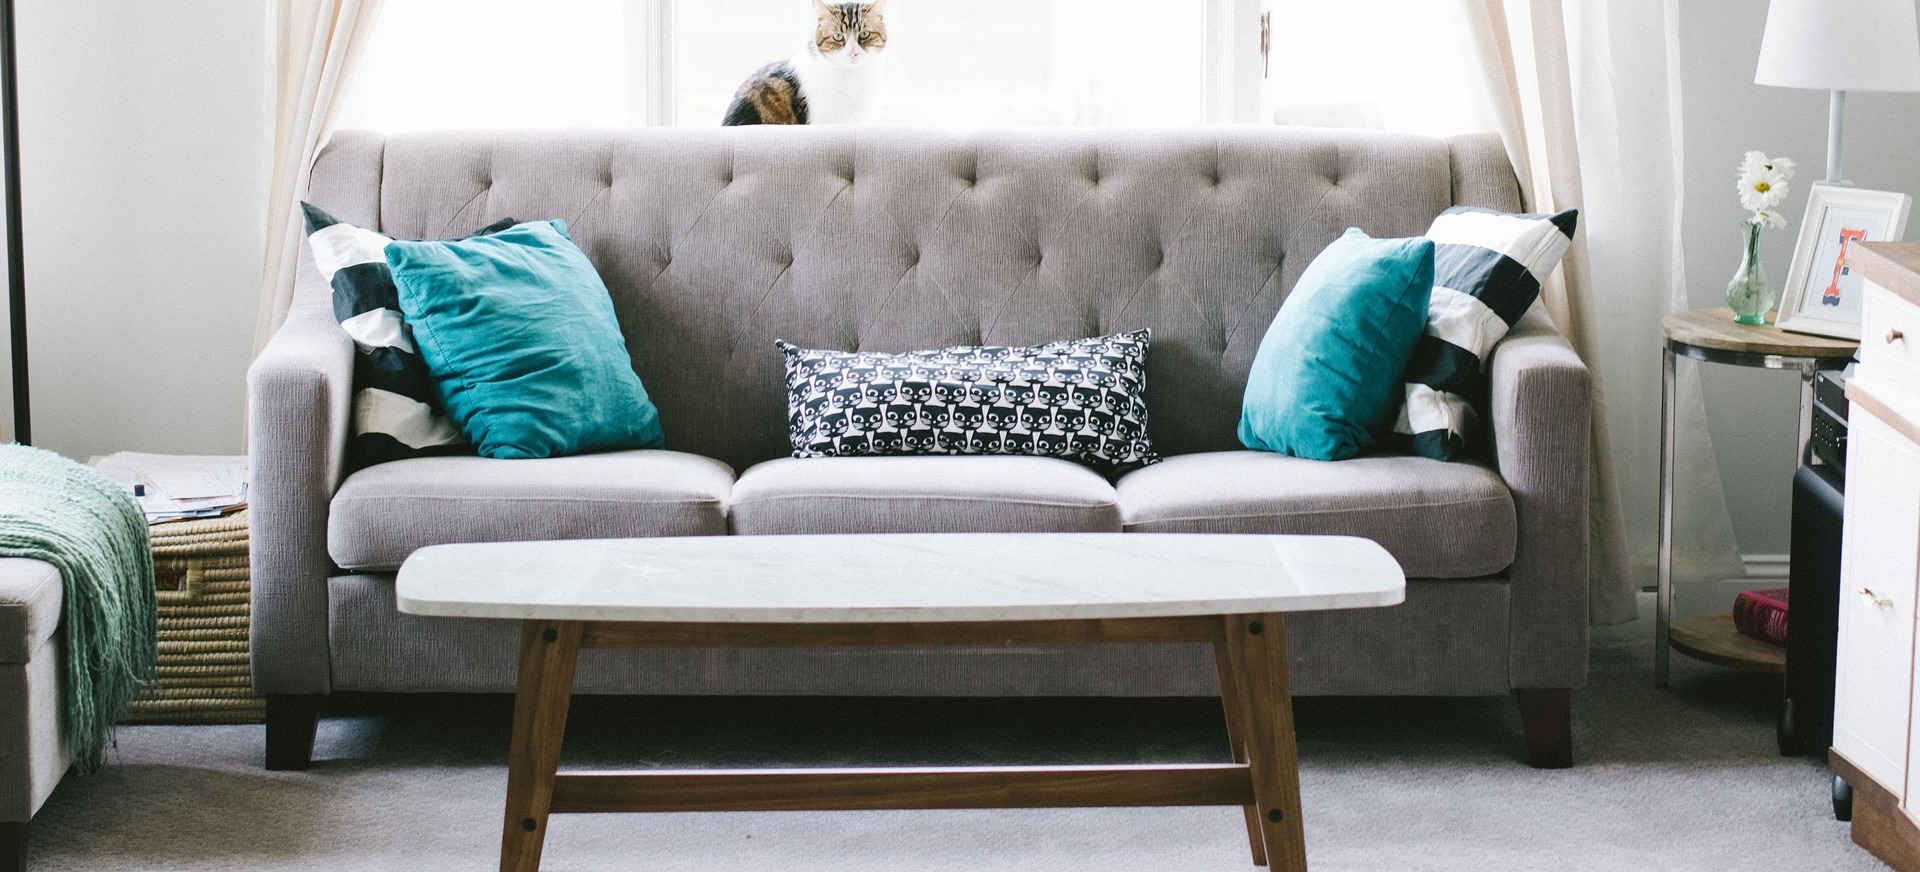 Strange Sofa Repairs Liverpool Homeserve Furniture Repairs Home Remodeling Inspirations Propsscottssportslandcom